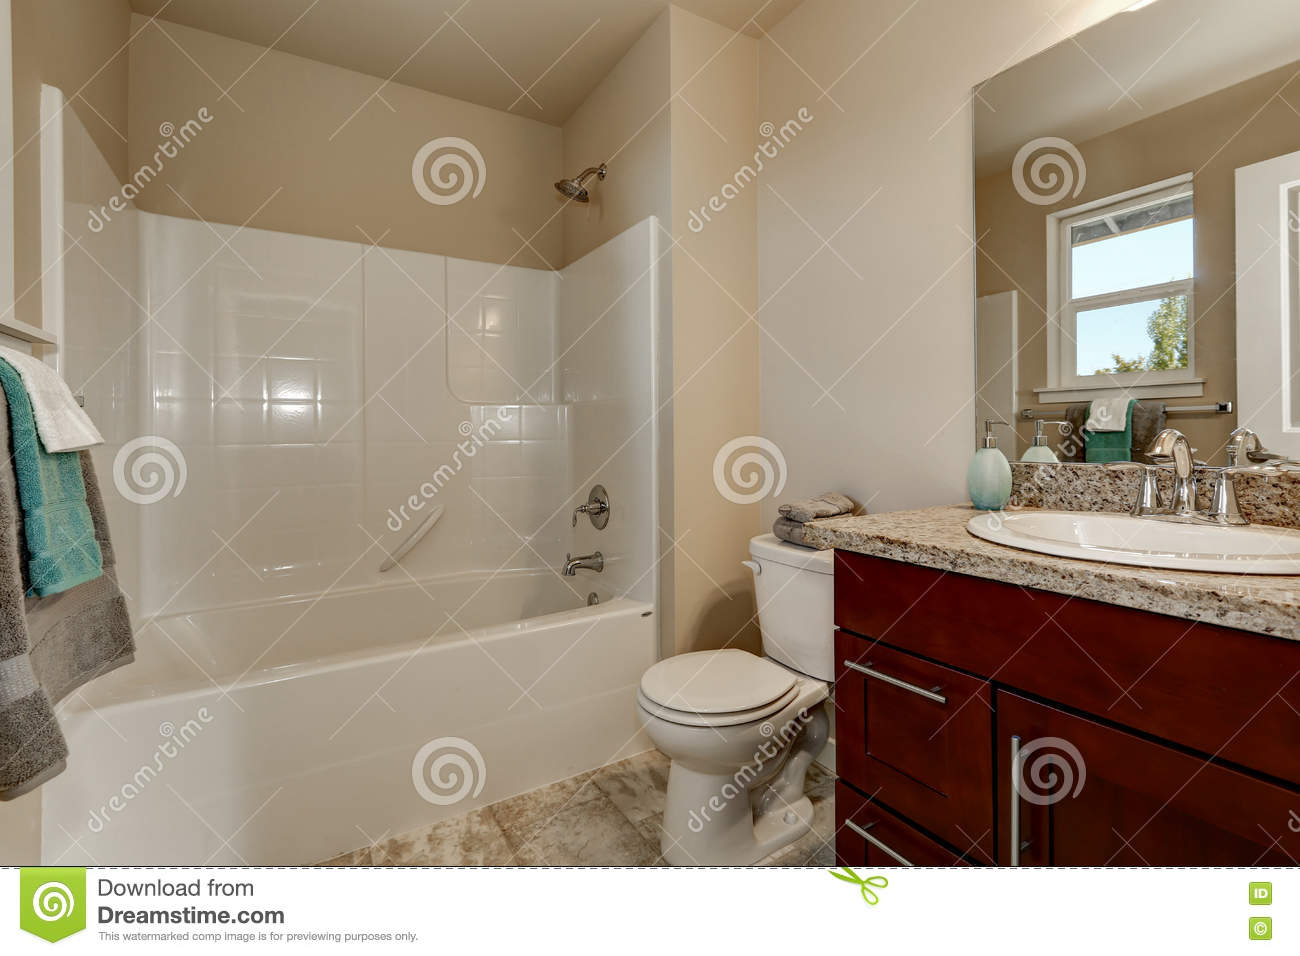 American Style Bathroom With Vanity Cabinet Toilet And